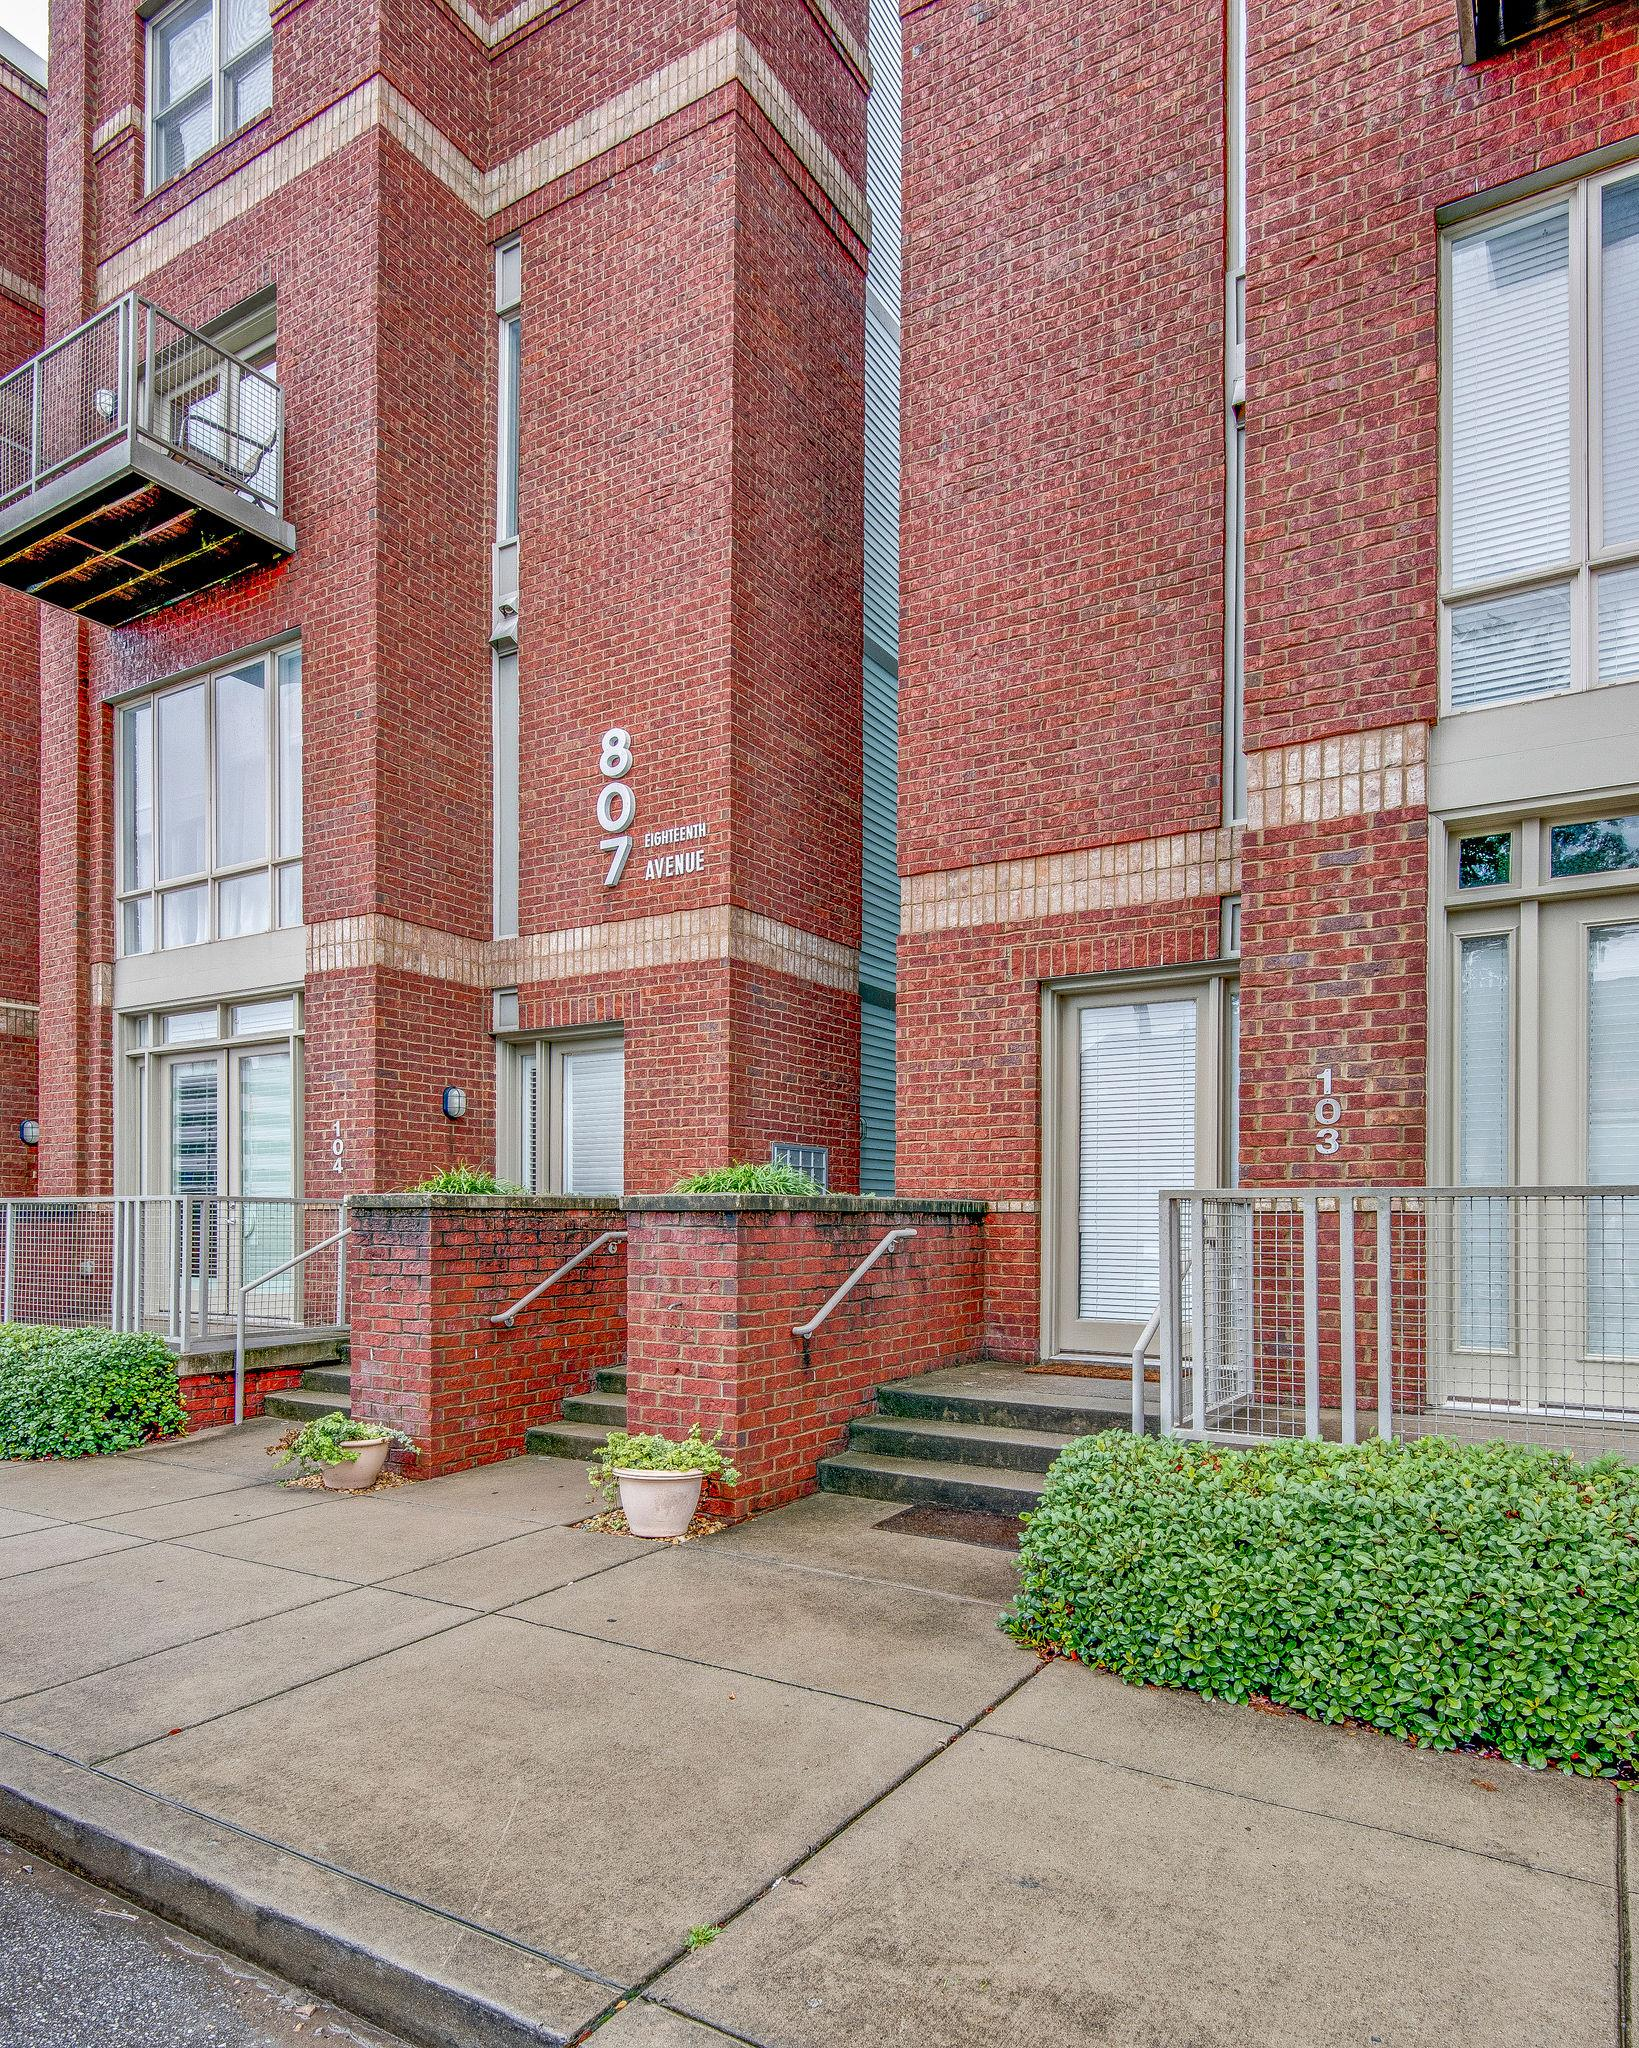 807 18th Ave S #411, Nashville - Midtown in Davidson County County, TN 37203 Home for Sale